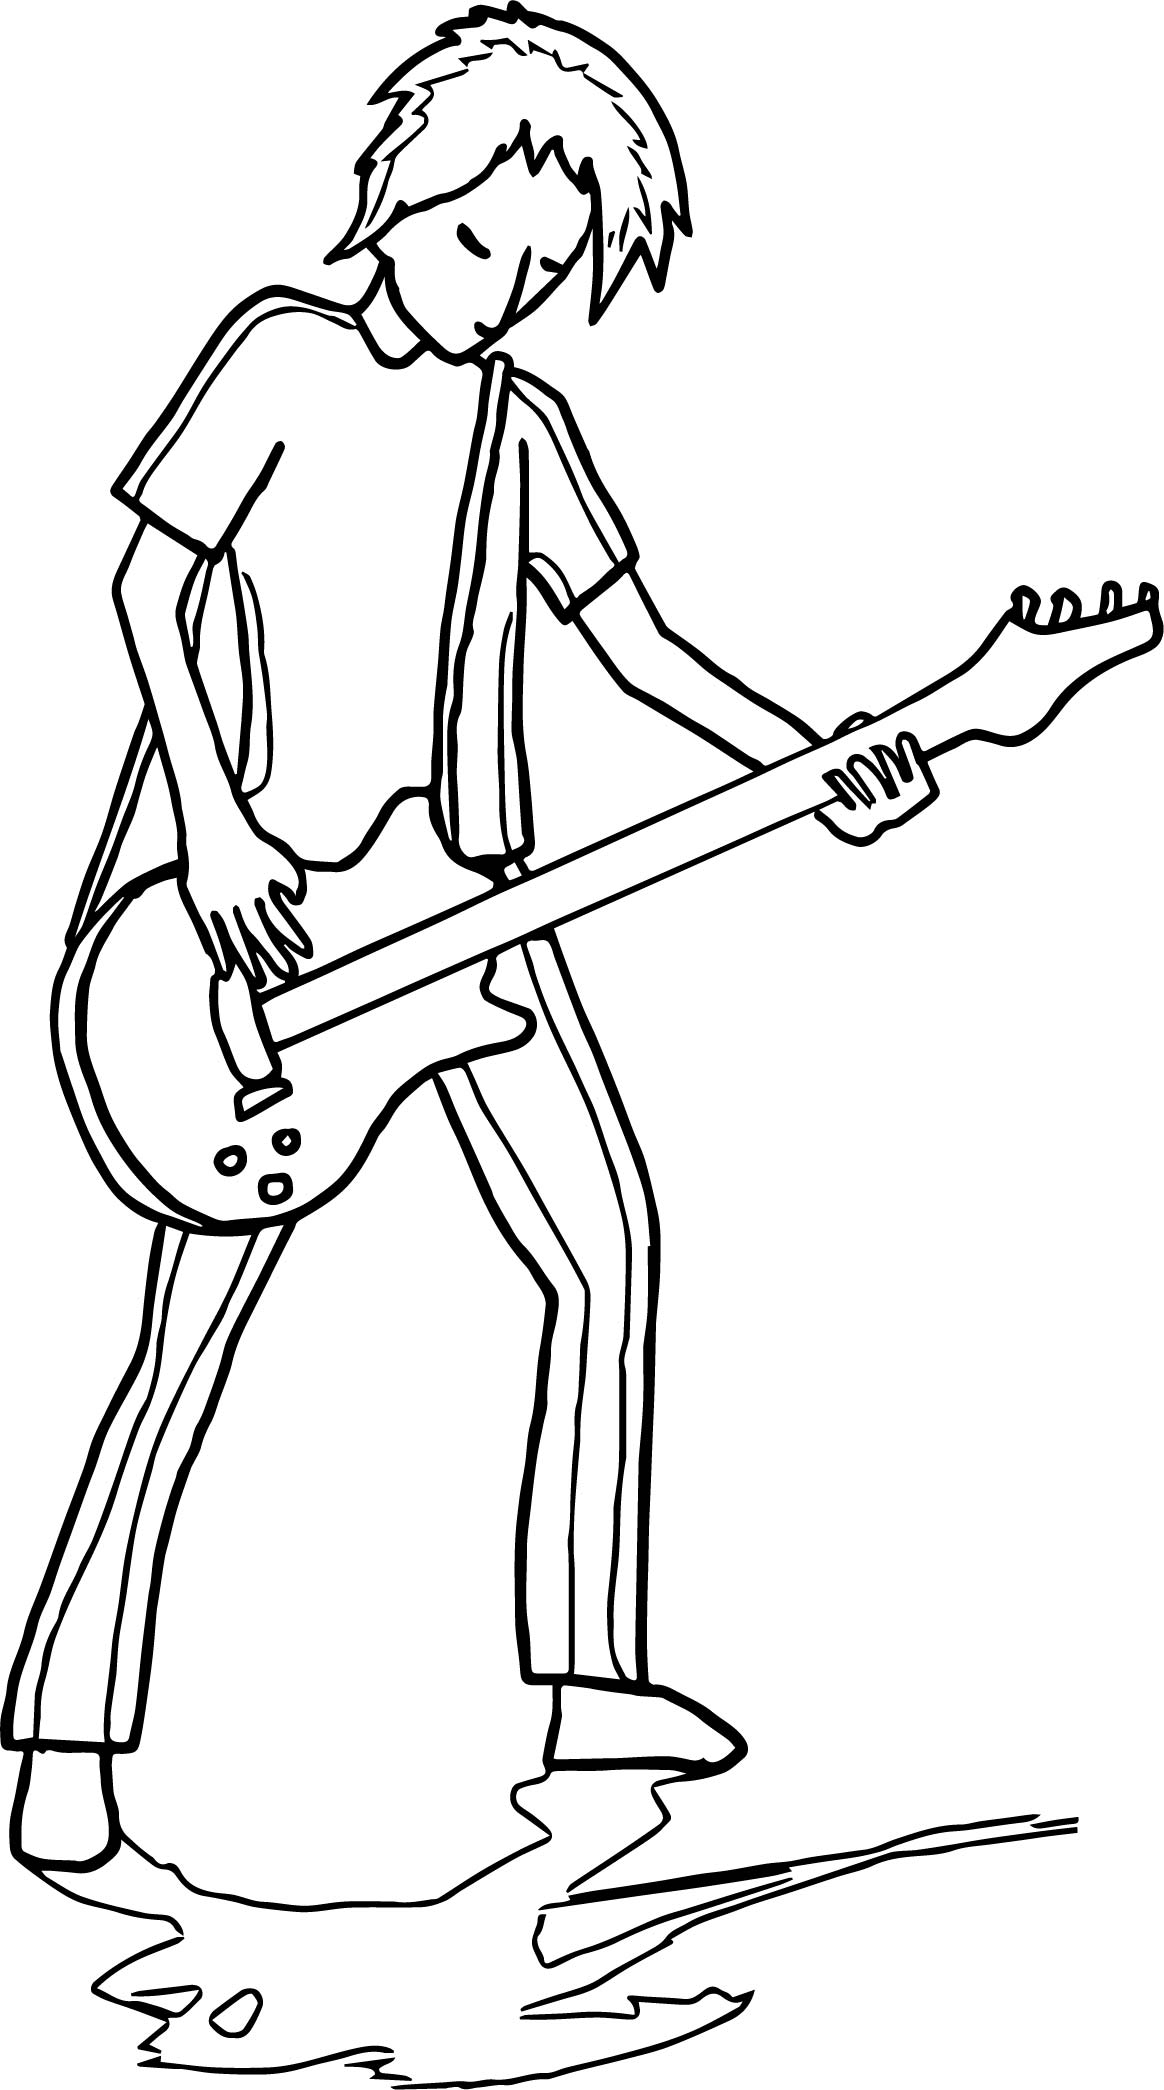 Guitarist Playing The Guitar Coloring Page Wecoloringpage